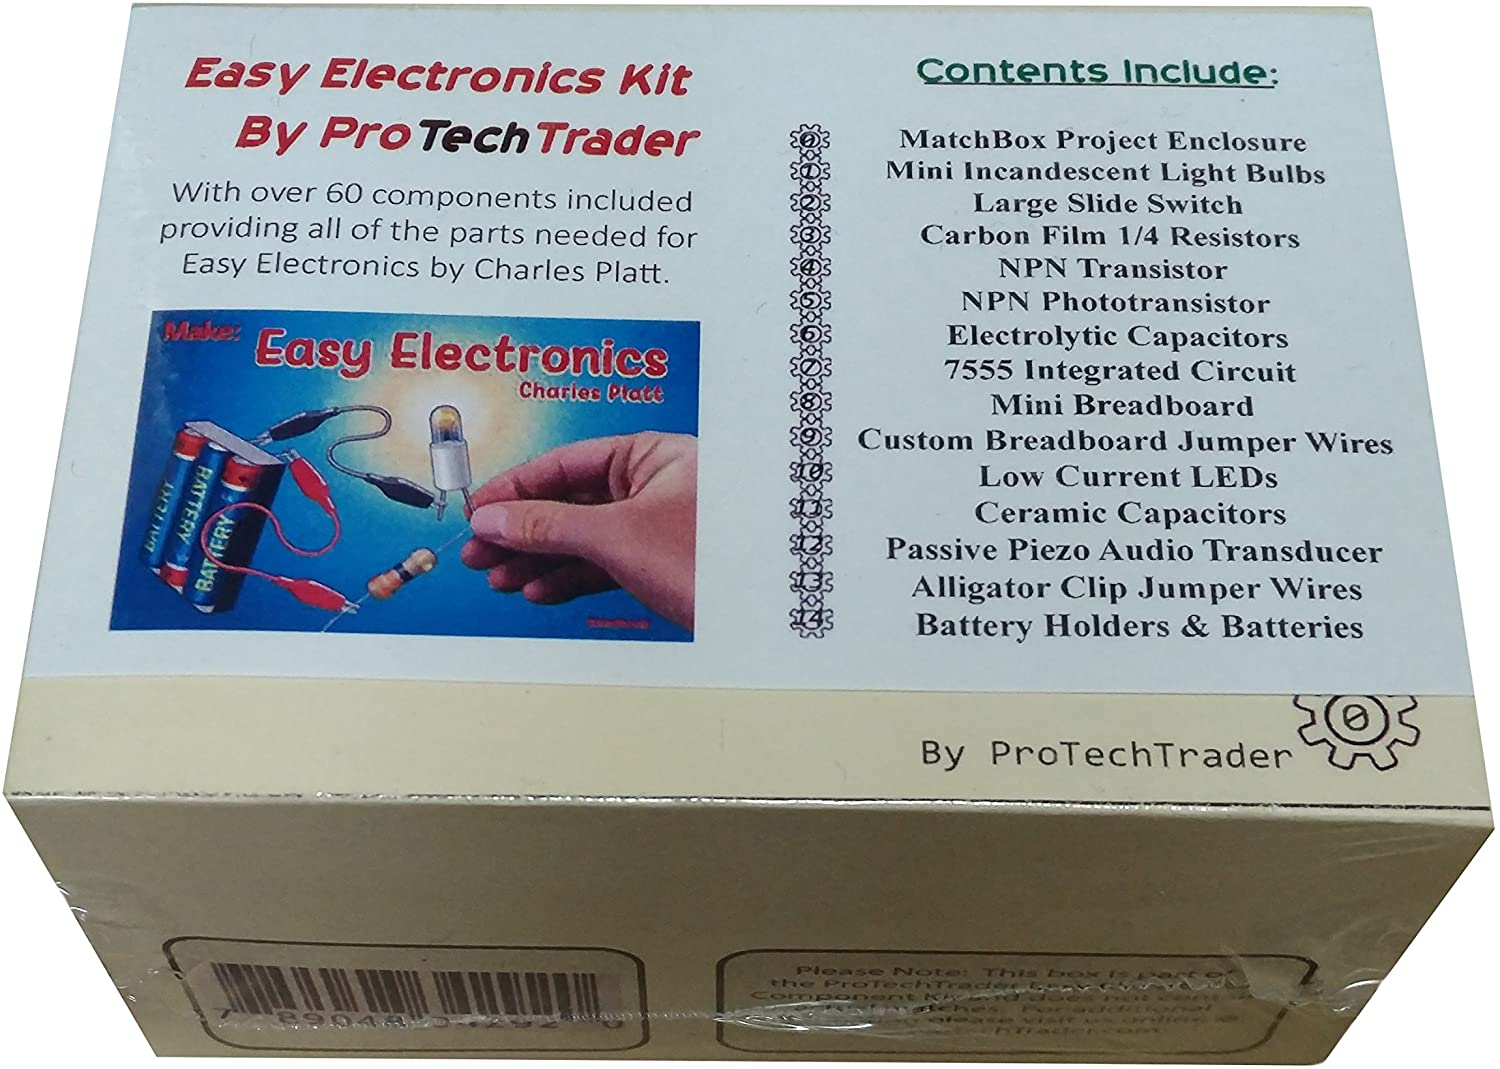 ProTechTrader Make: Easy Electronics Component Pack - Lean Basic Electronics with no Tools for Easy Electronics by Charles Platt (Book Sold Separately)